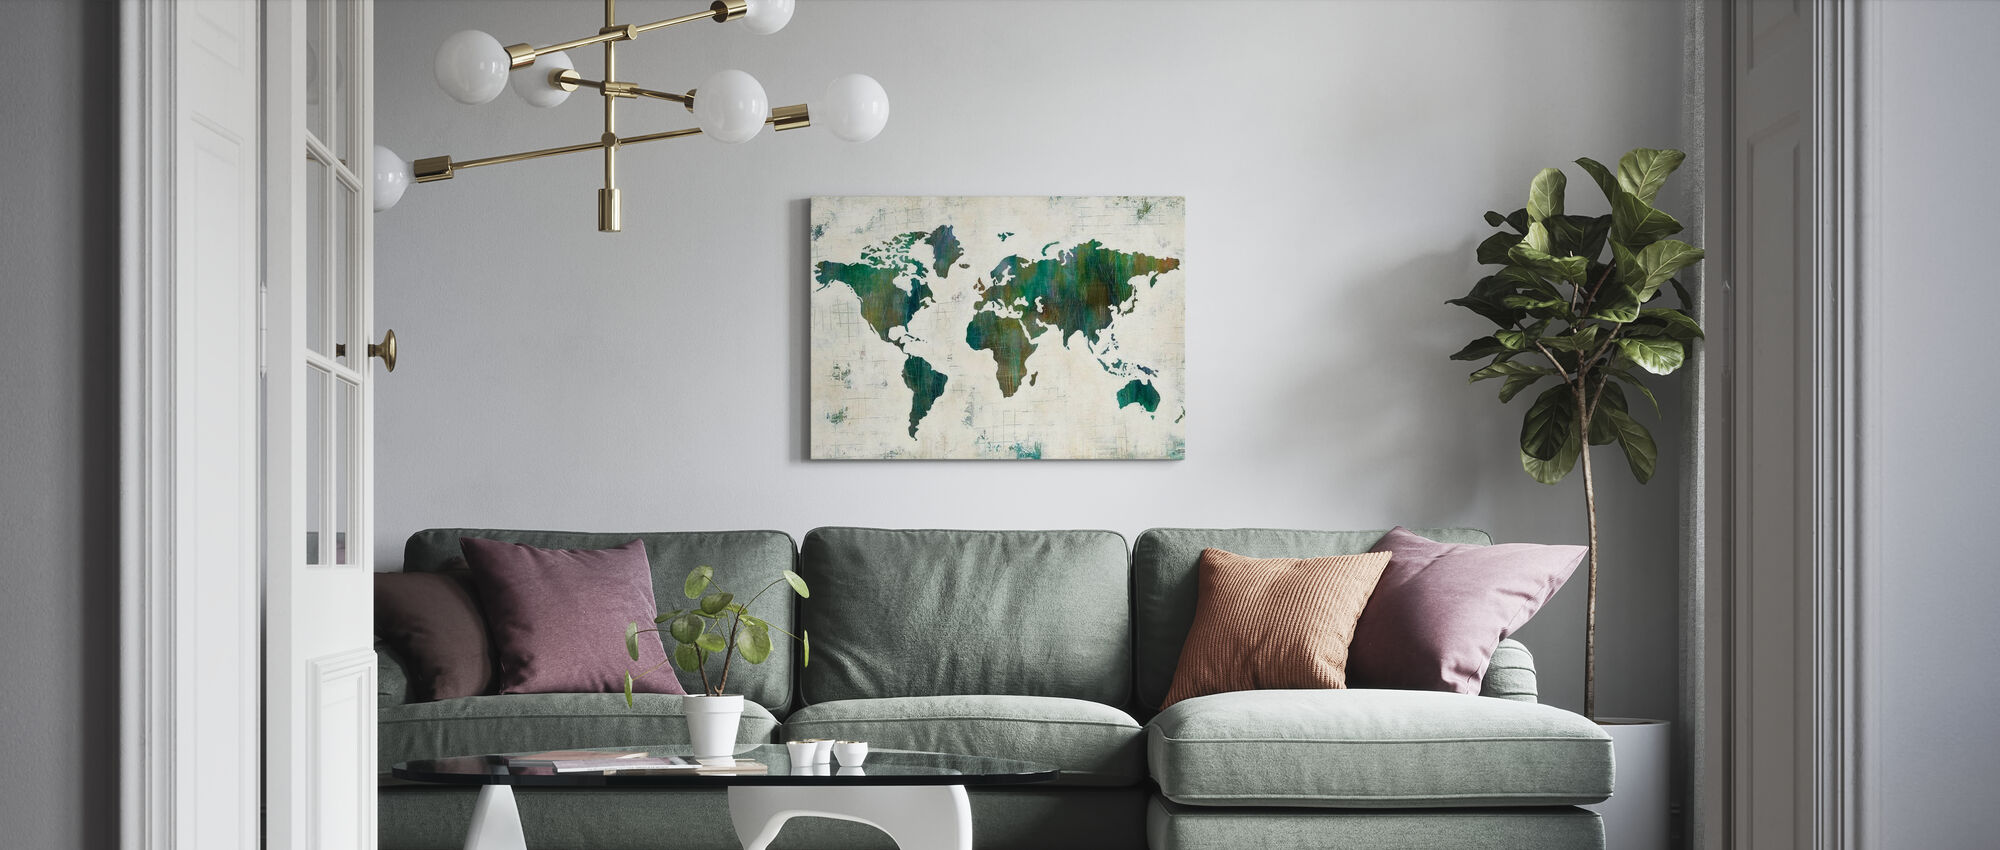 Discover the World - Canvas print - Living Room